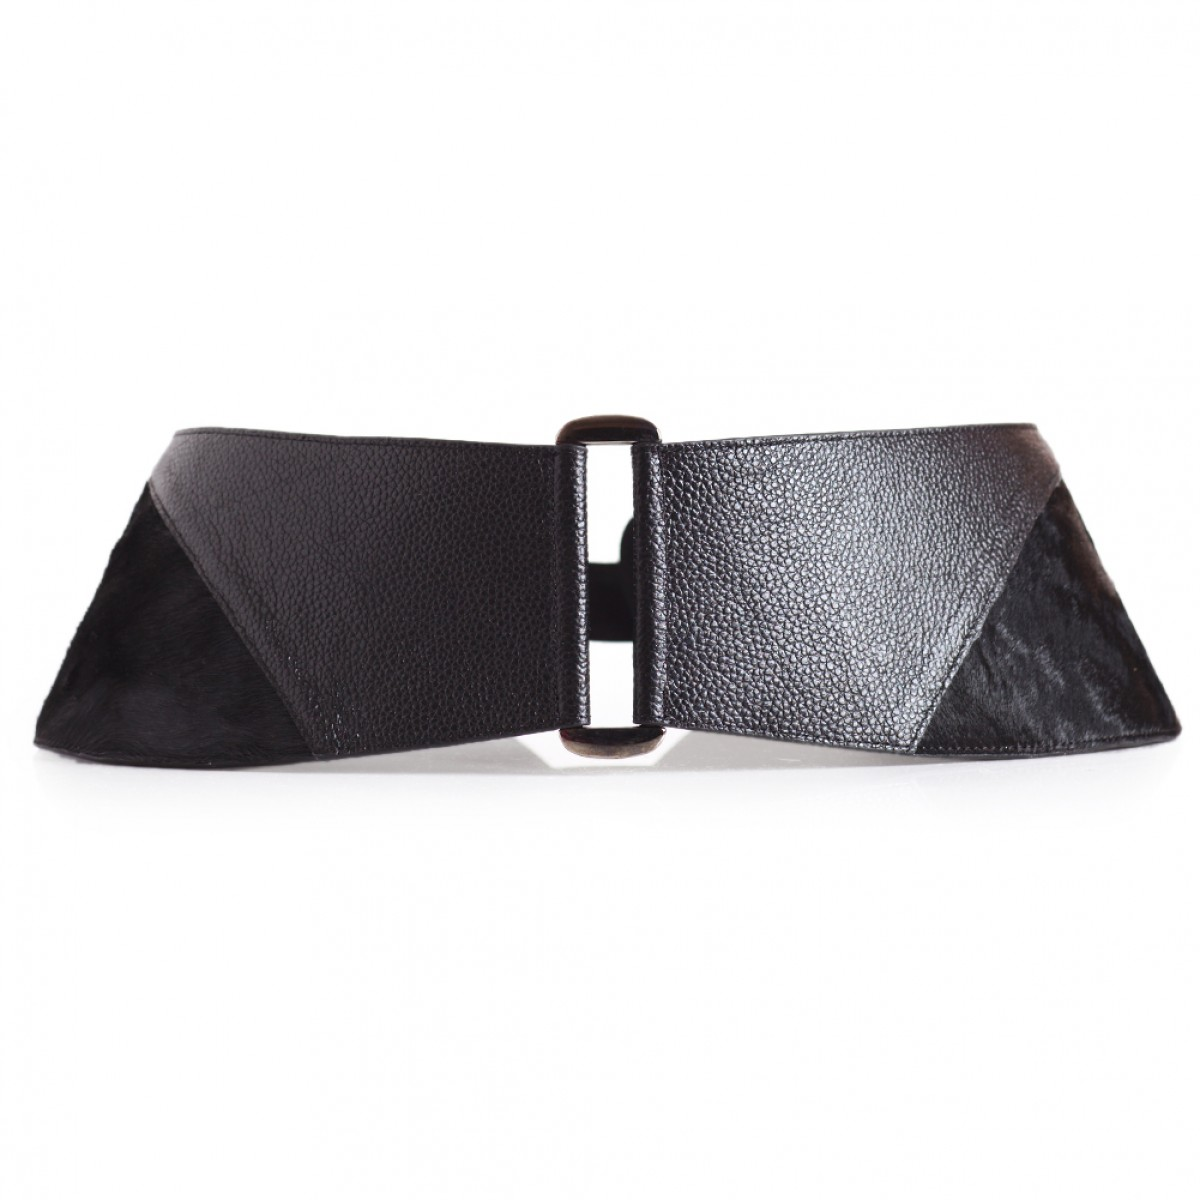 From stylish waist belts to classic leather styles, choose from a variety of buckles and colours. your browser is not supported. Monki faux leather belt in black. £ ASOS DESIGN multi circle waist and hip jean belt. £ Weekday Slim Leather Belt. £ Pieces Waist Belt. £ Mango embroidered waist belt in multi.